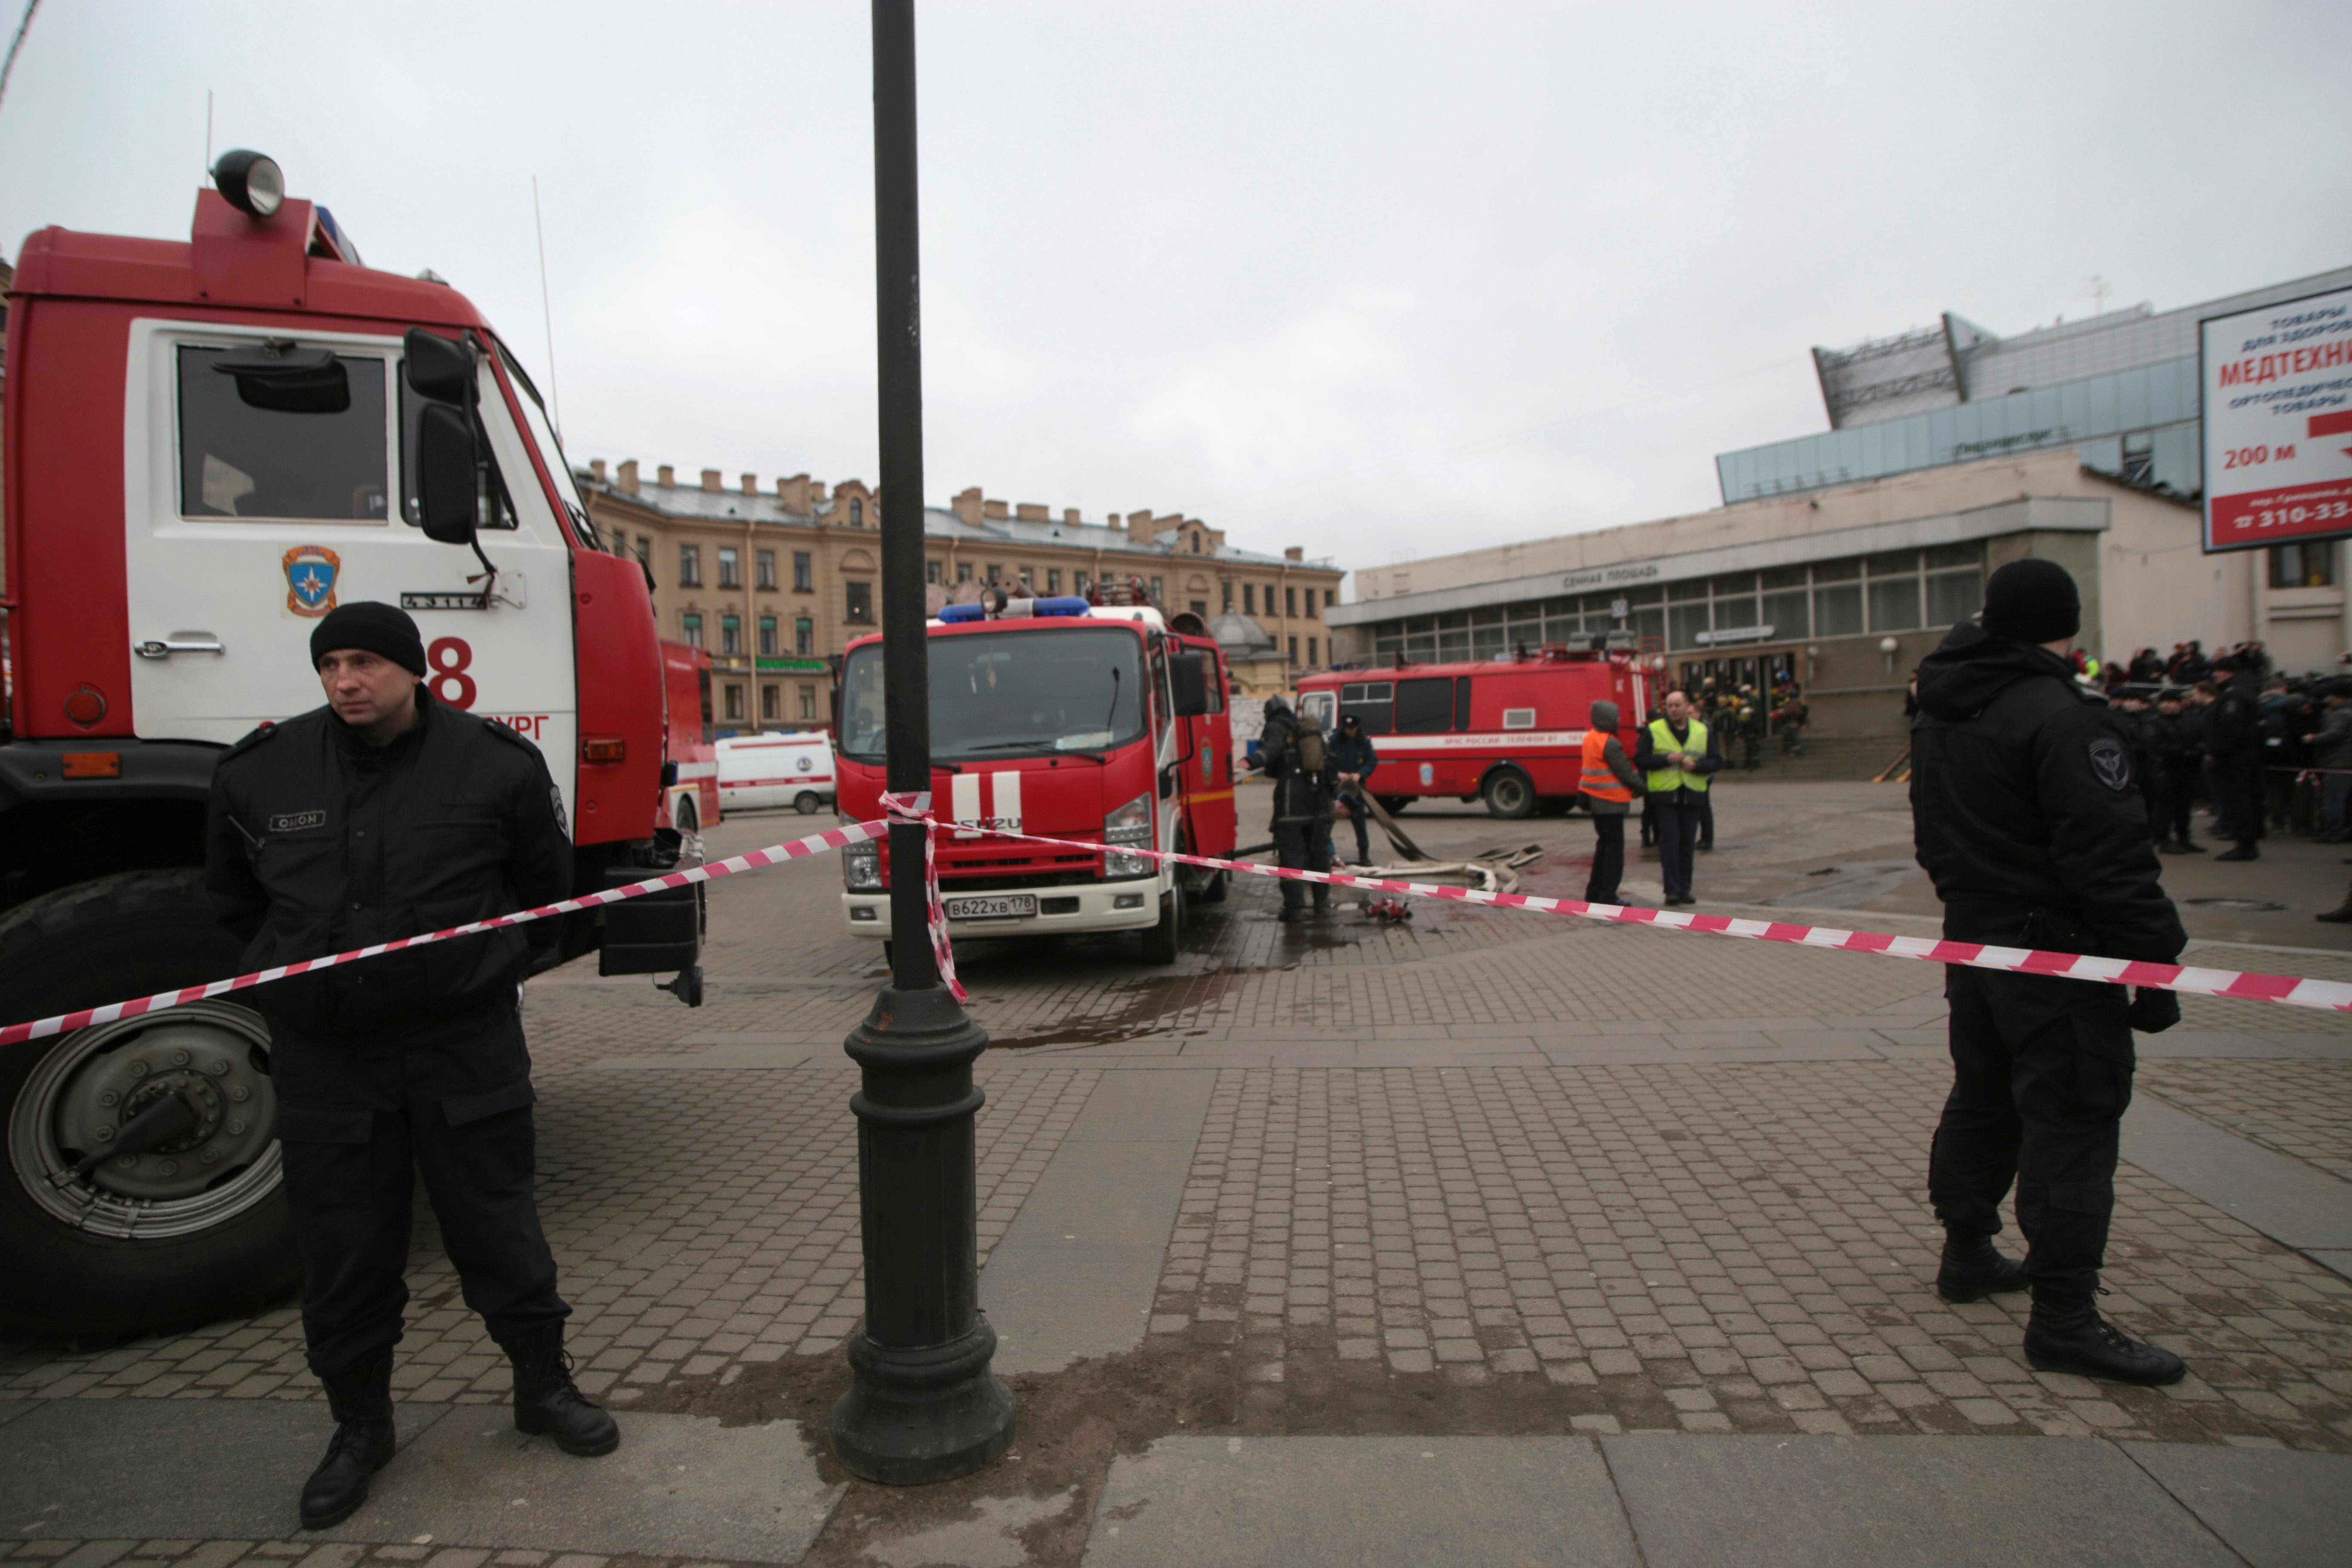 Russian police and emergency service officers stand near fire trucks near the entrance of Sennaya Square subway station in St. Petersburg, Russia, Monday, April 3, 2017. The subway in the Russian city of St. Petersburg is reporting that there are fatalities and several people have been injured in an explosion on a subway train. (AP Photo/Evgenii Kurskov)